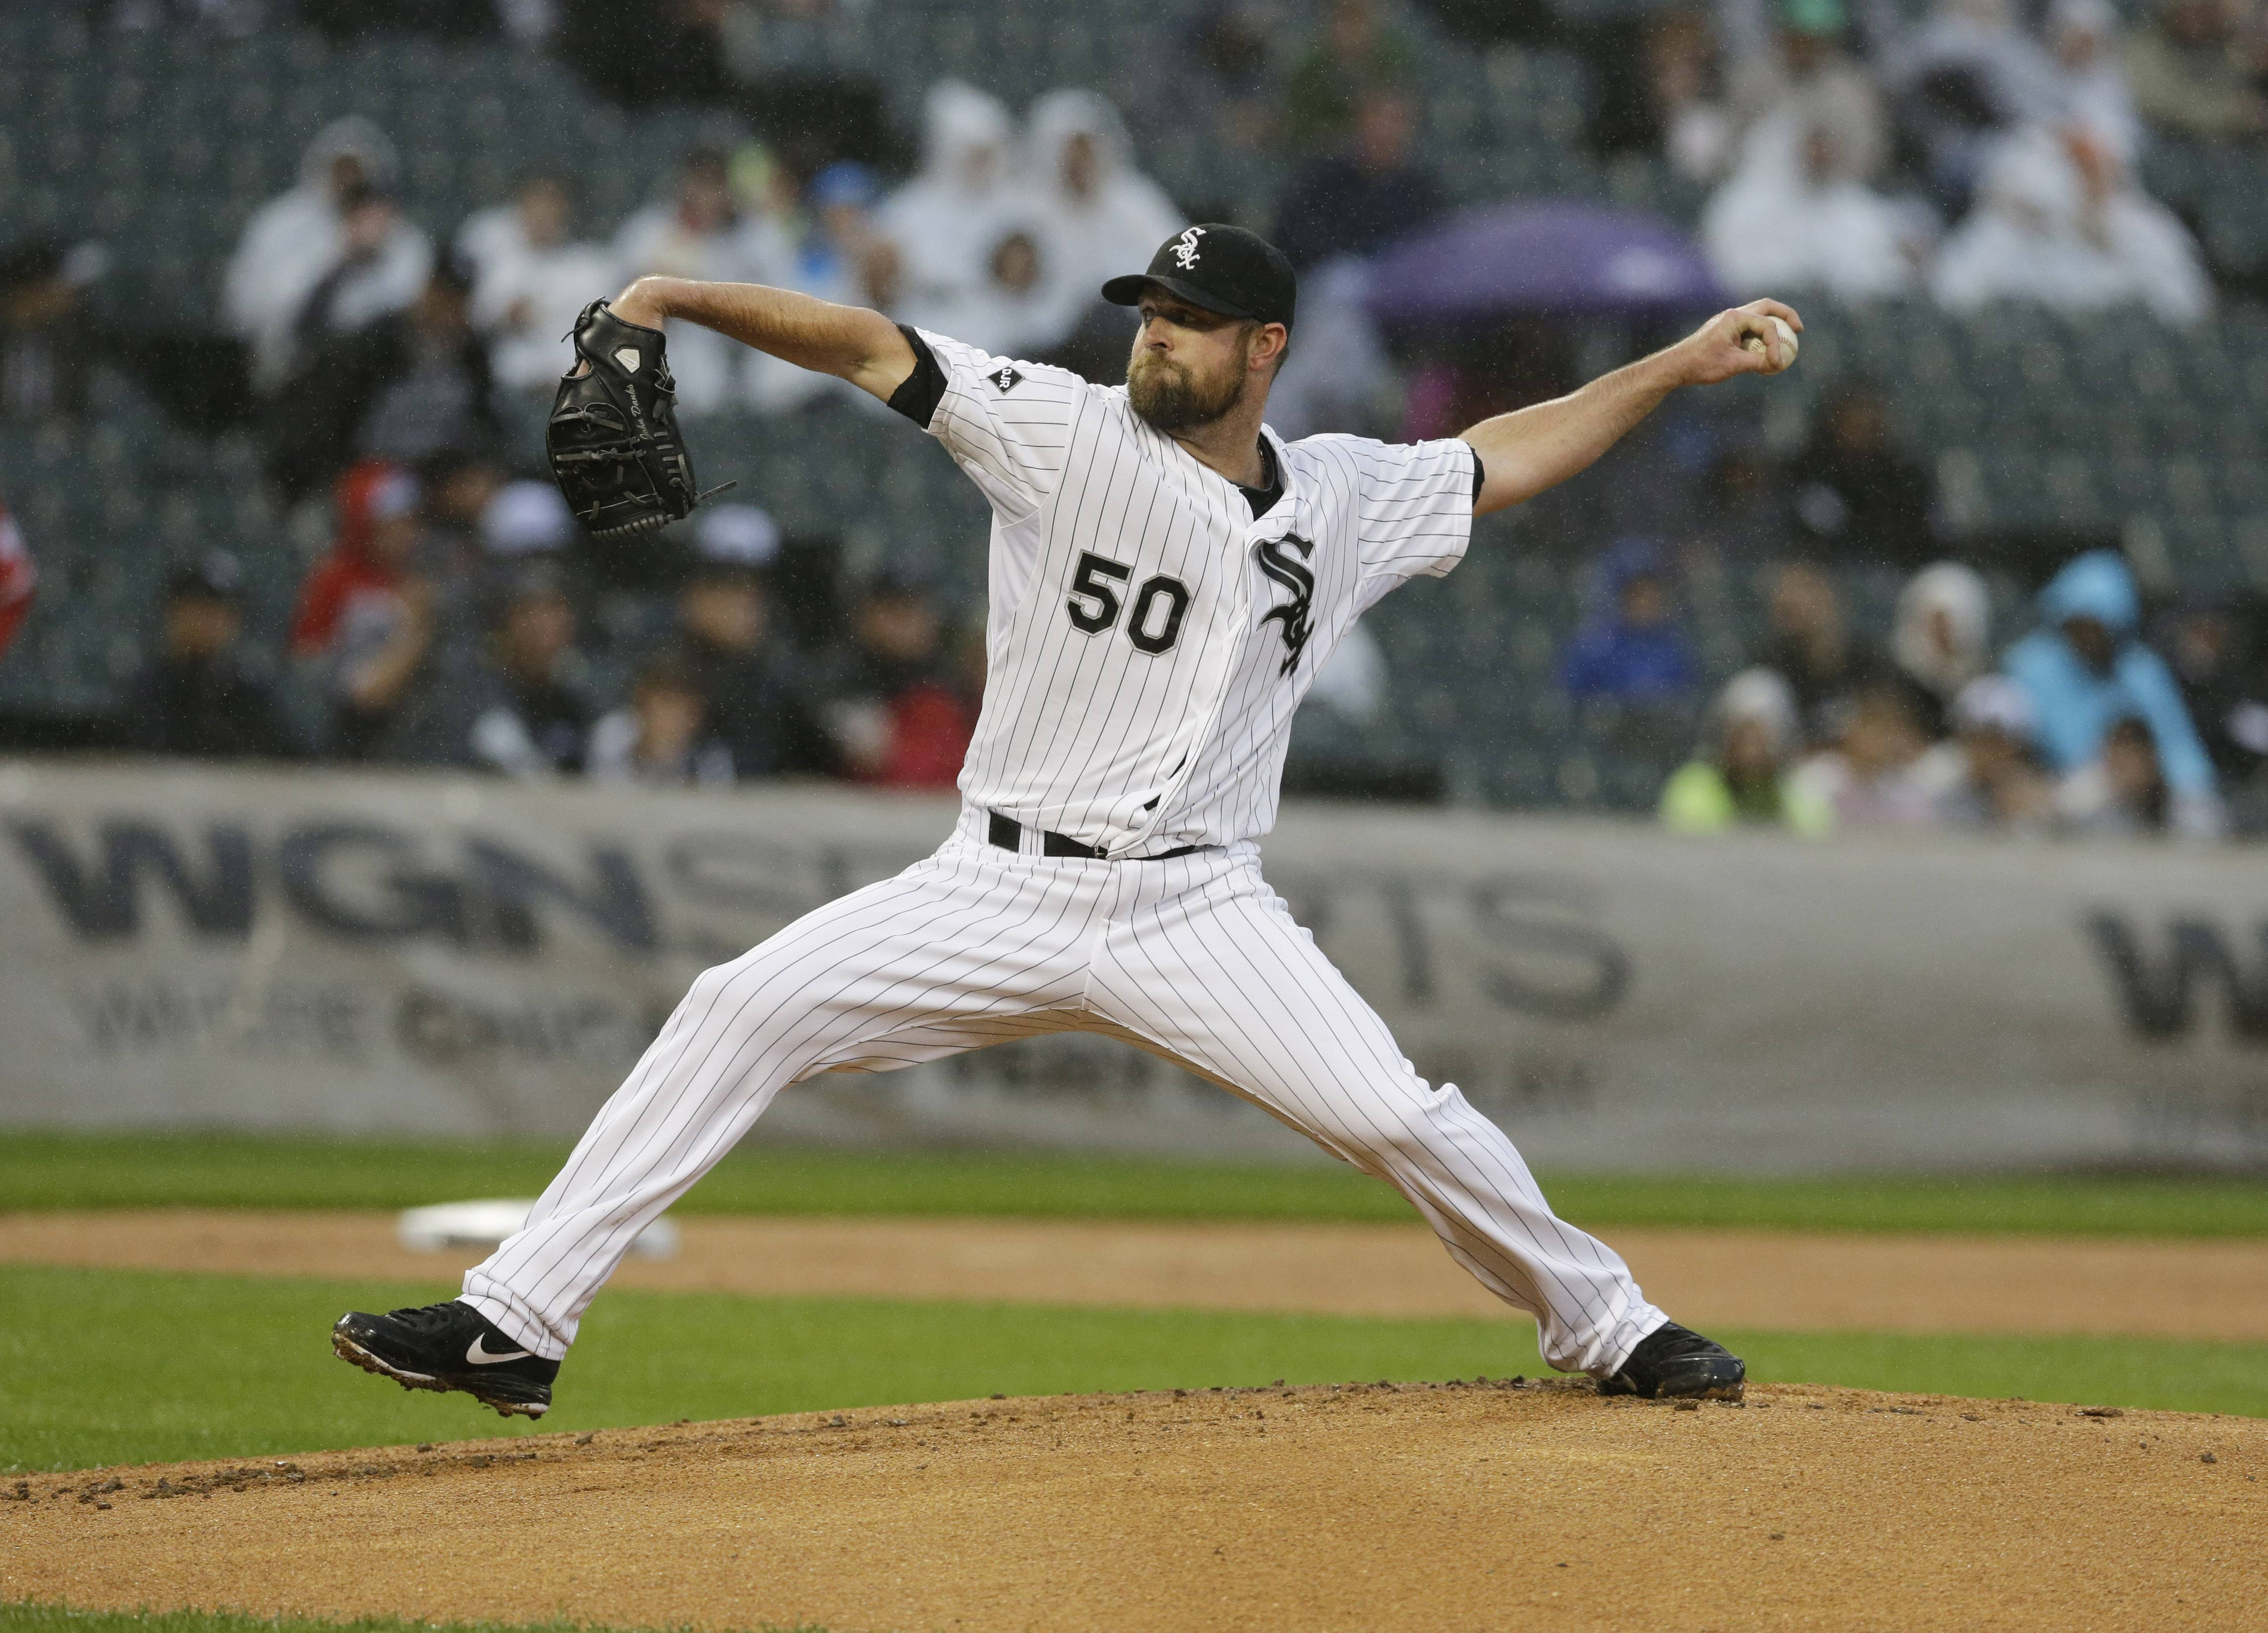 White Sox starter John Danks throws against the Los Angeles Angels during the first inning of a baseball game in Chicago on Wednesday, July 2, 2014.